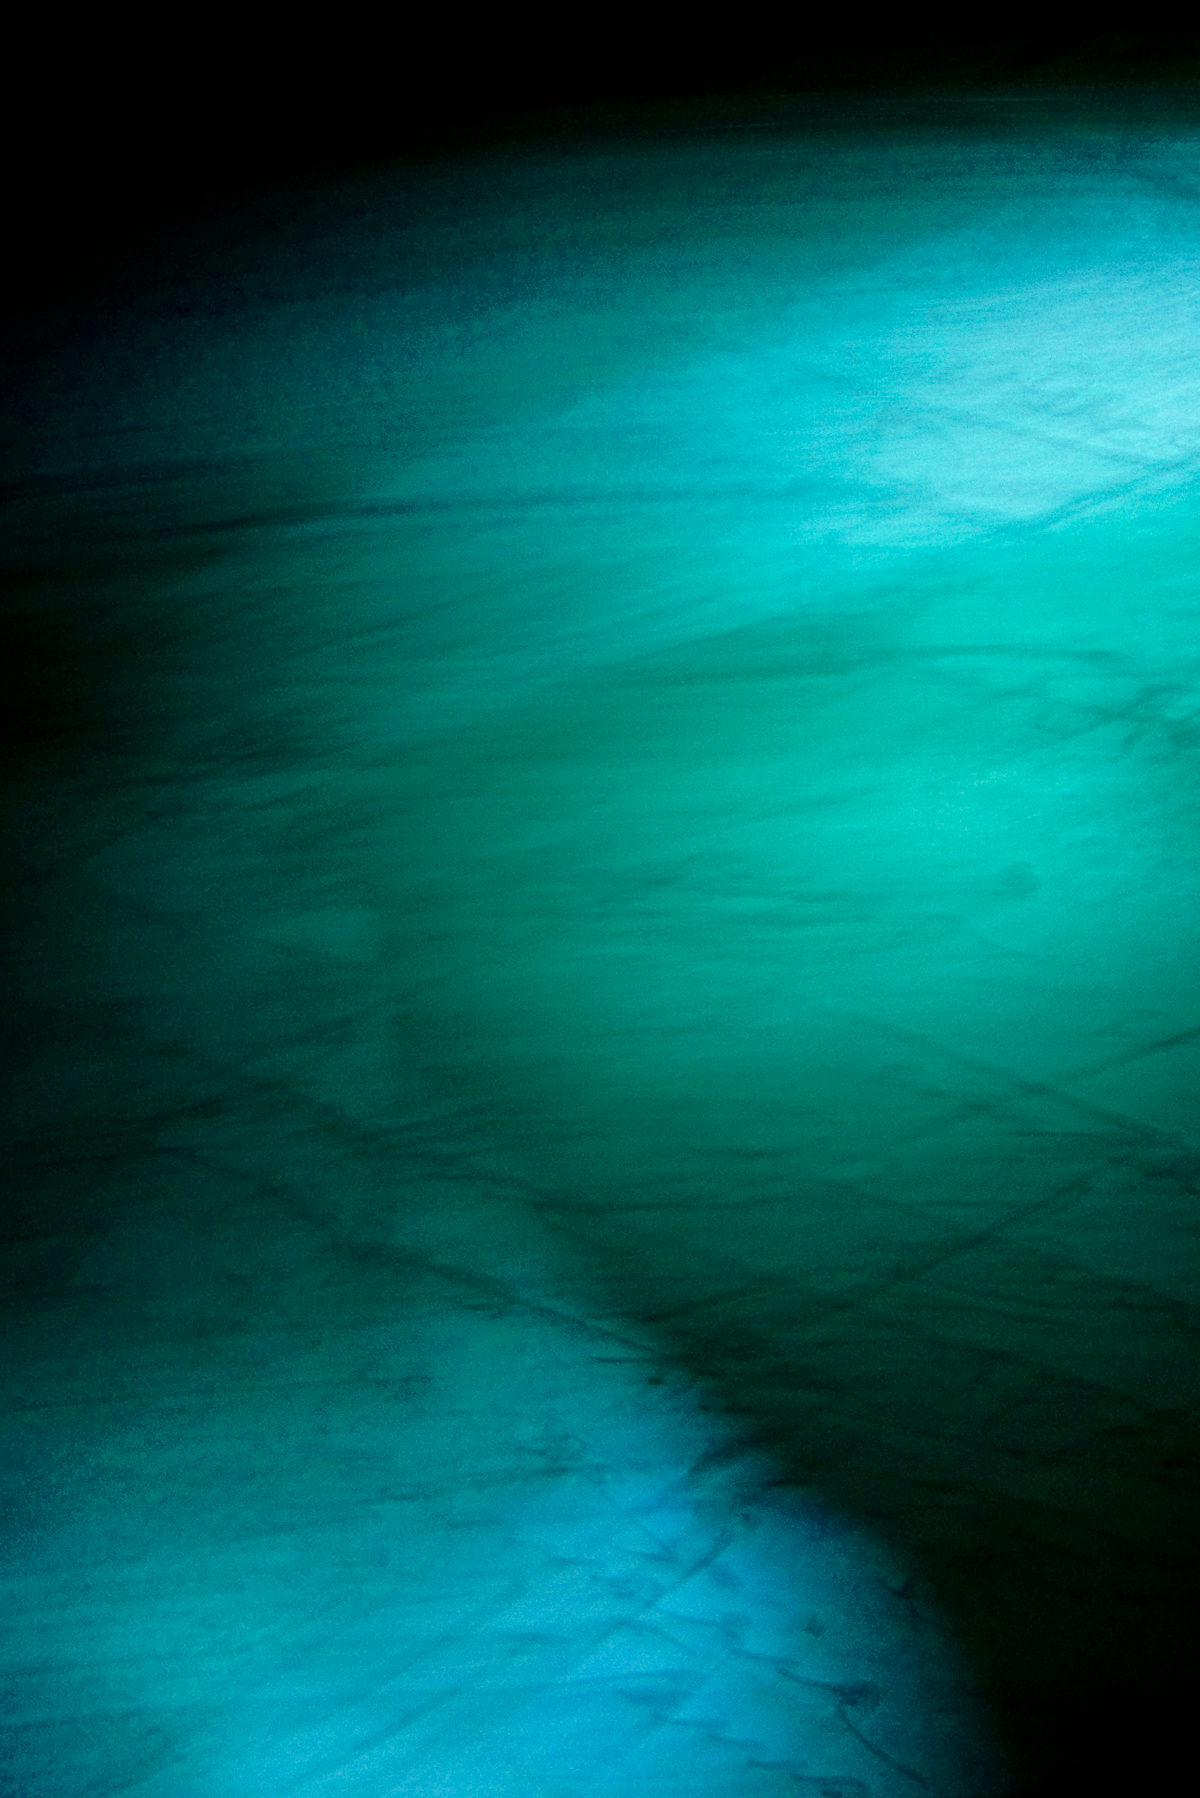 Untitled, 2010, Abstract Color Photography, Shirine Gill